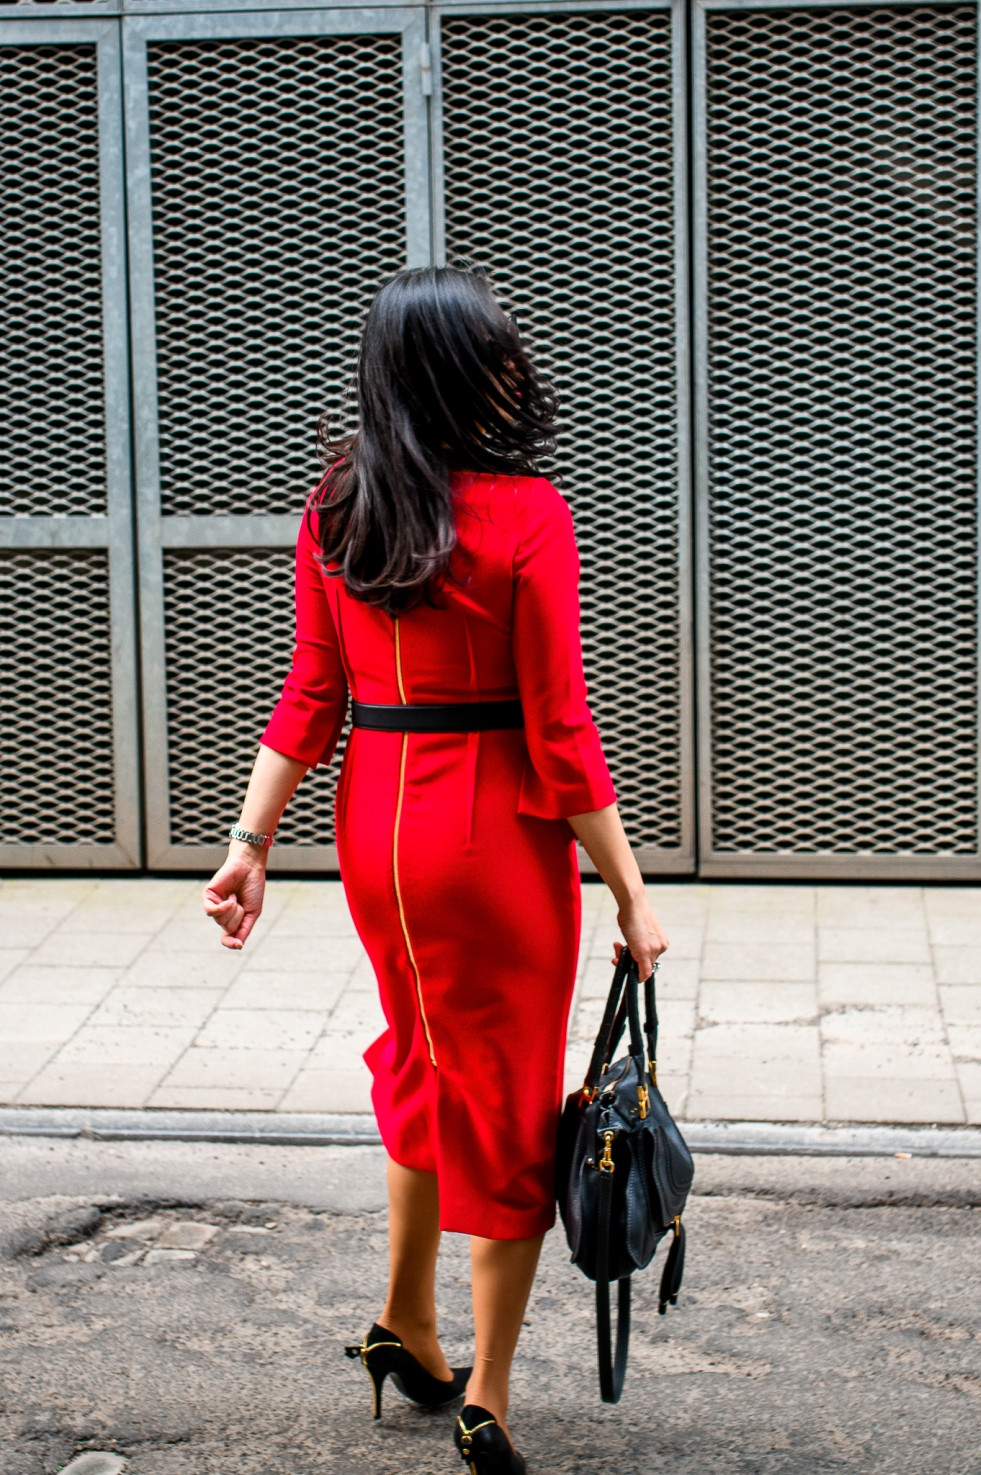 Woman wearing a red pencil dress turning her back